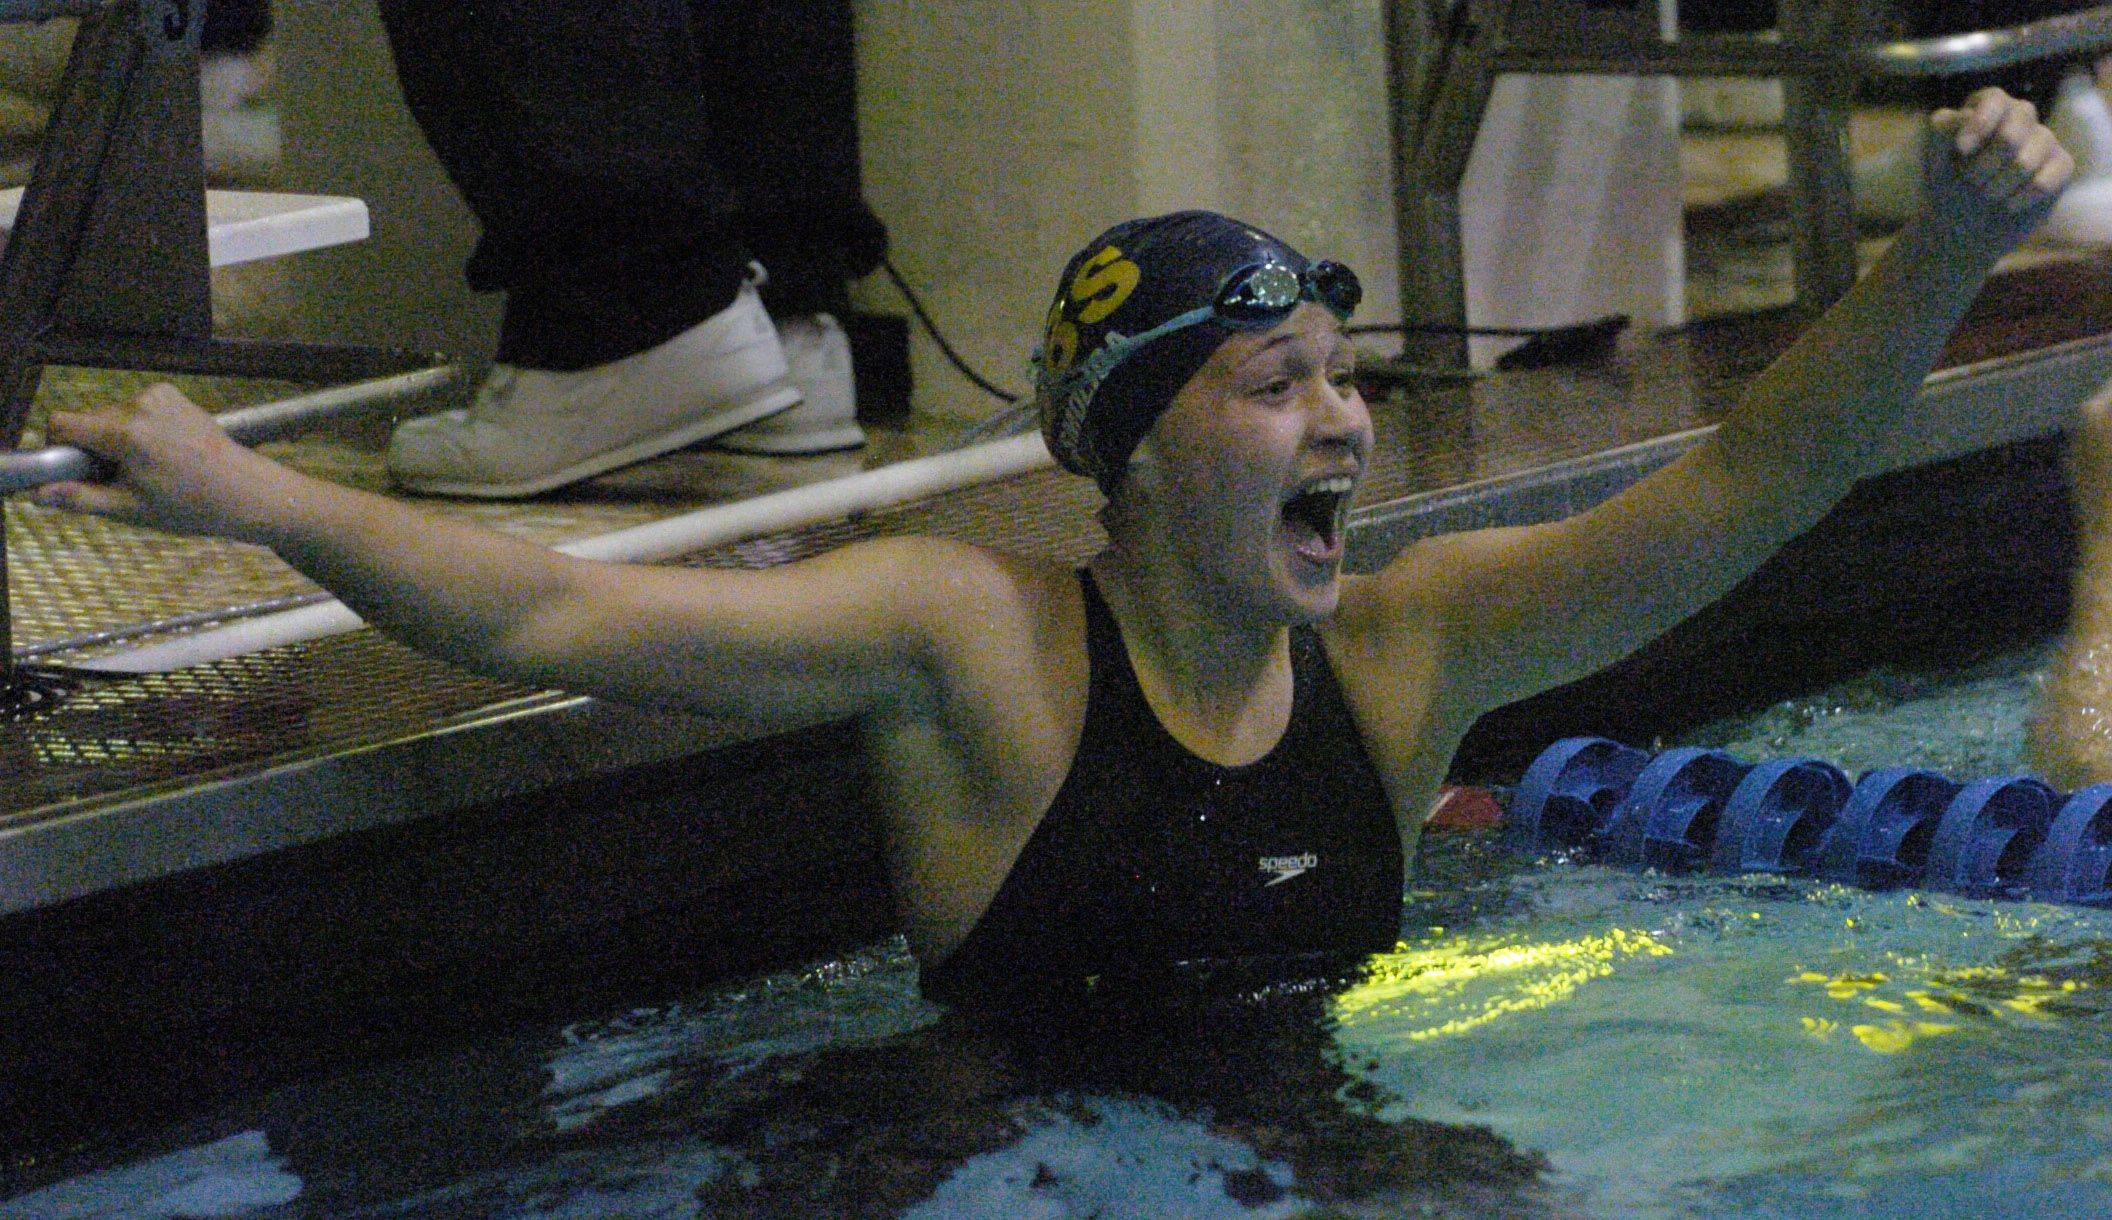 Olivia Smoliga of Glenbrook South celebrates after breaking the state record in the 100-yard back stroke during Friday's girls state swimming prelims at Evanston High School.